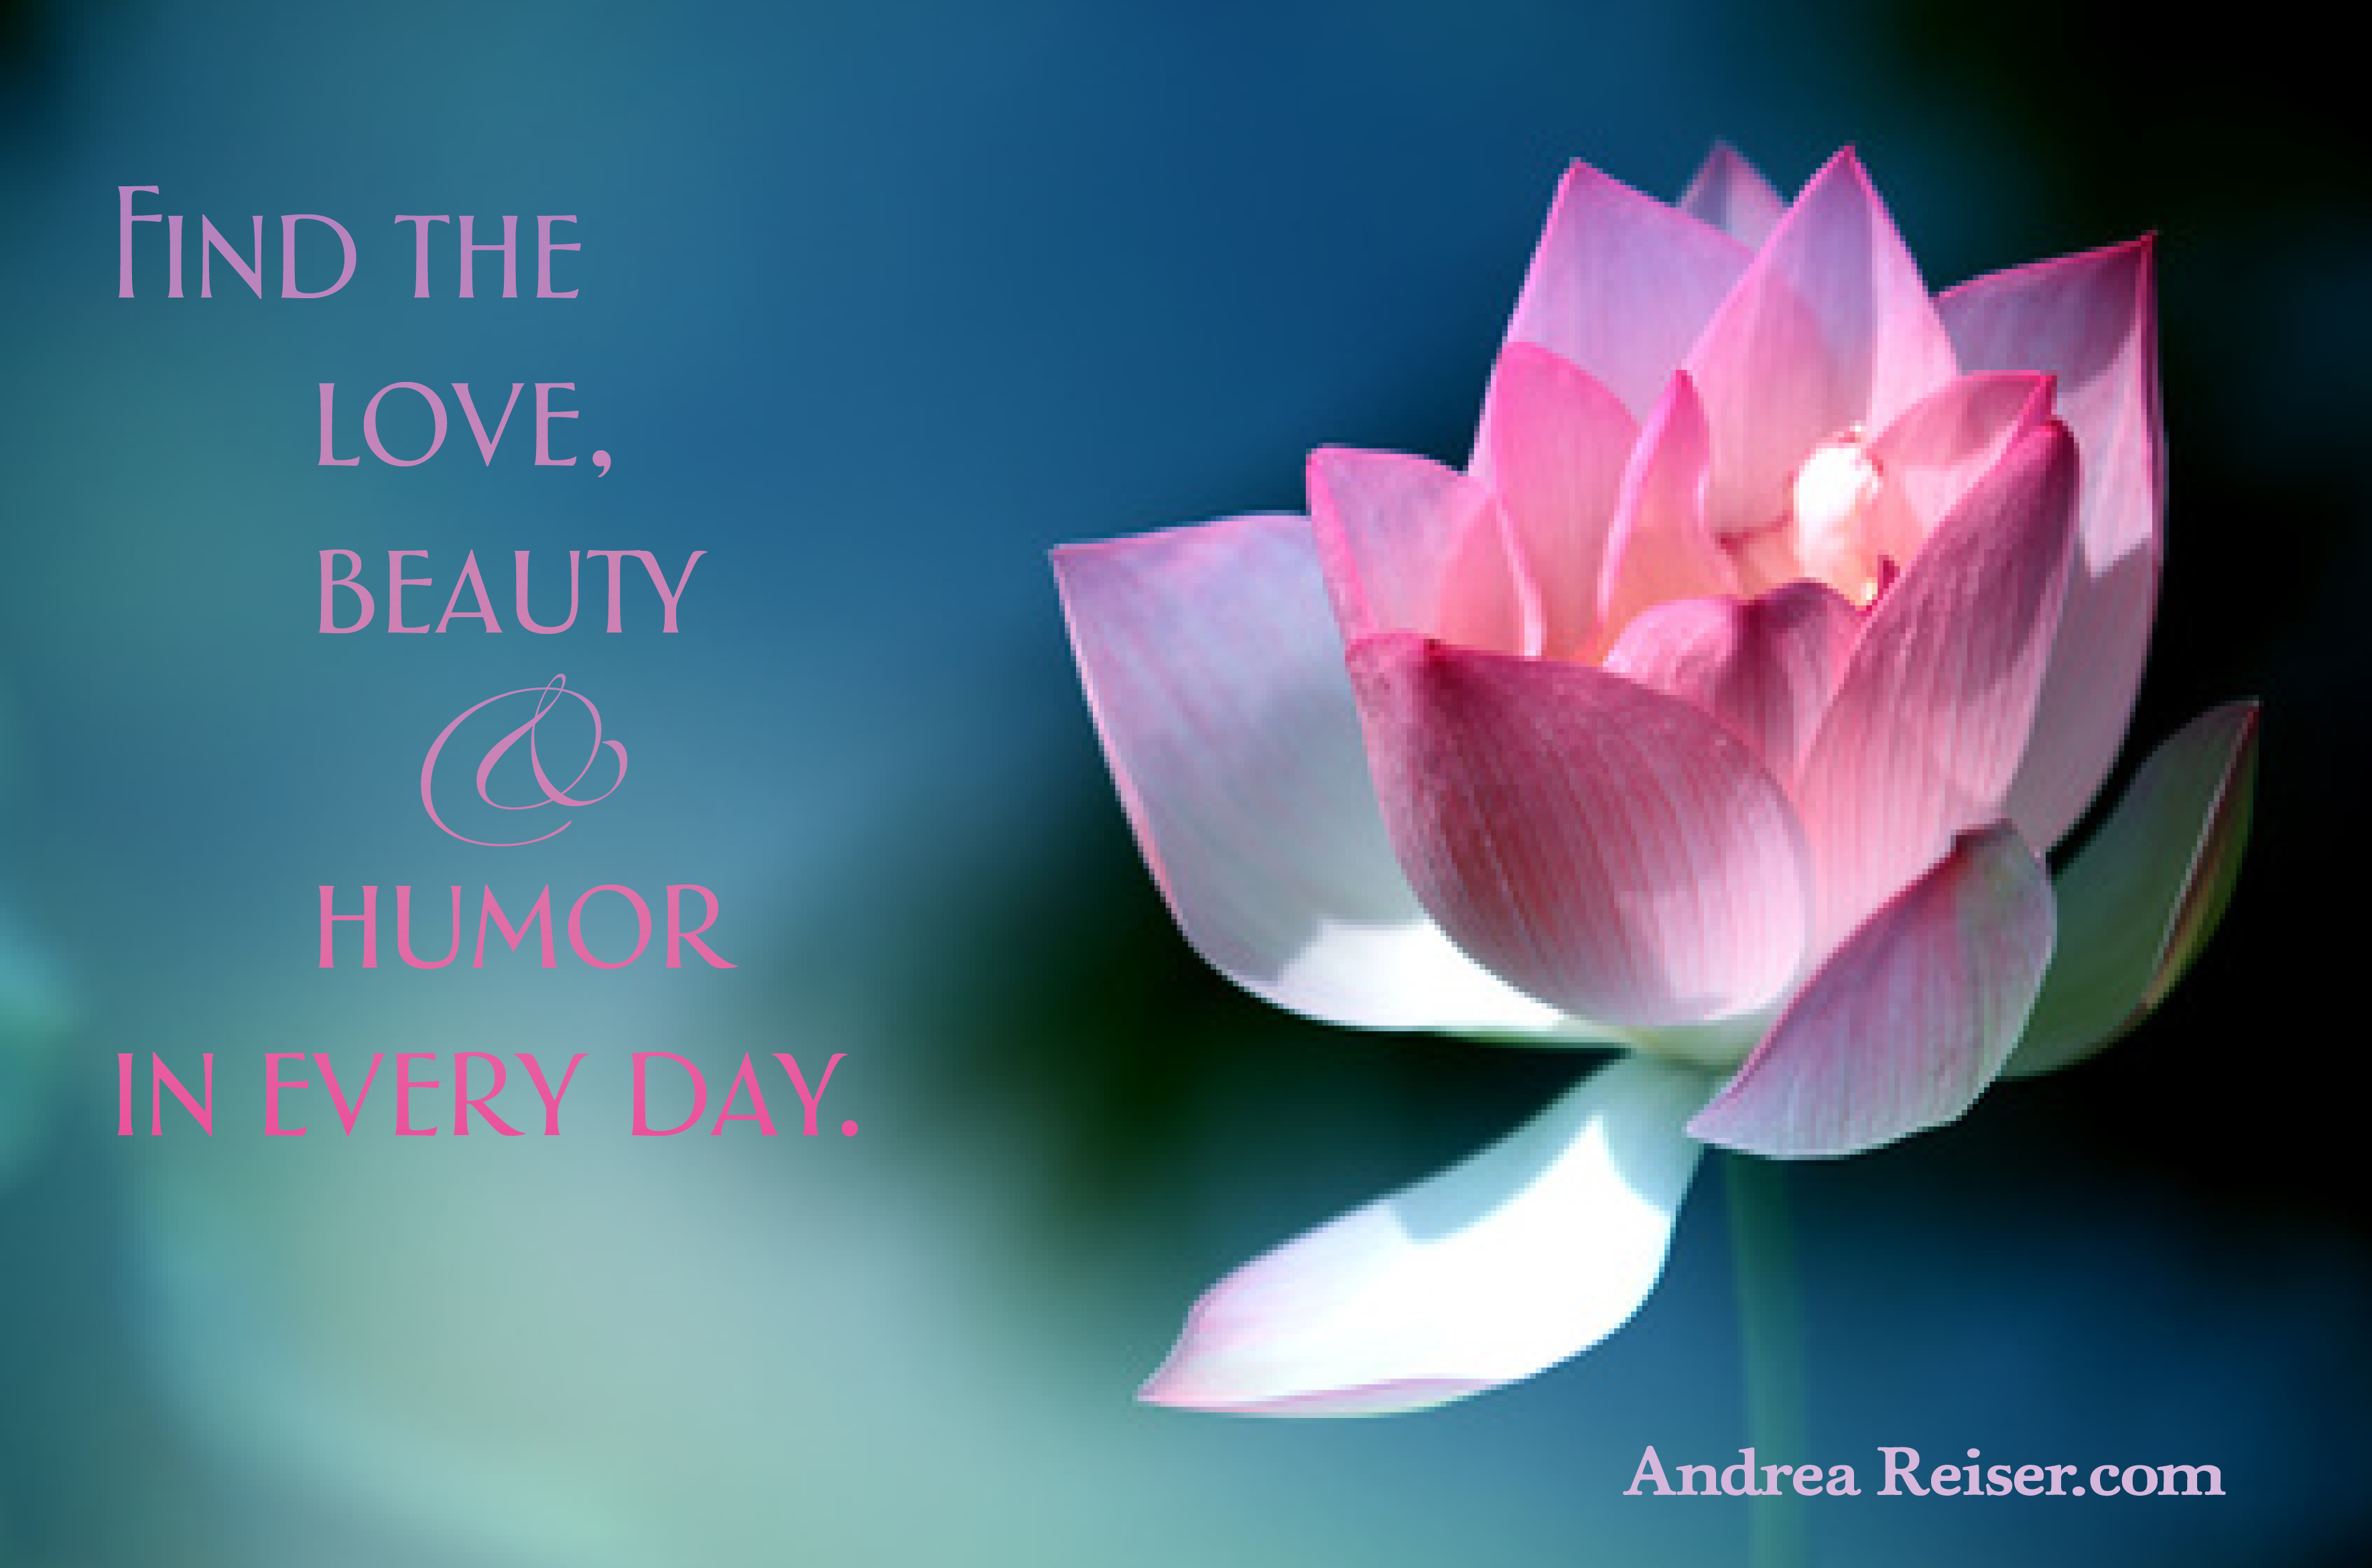 Find The Love Beauty Humor In Every Day Lotus Flower Andrea